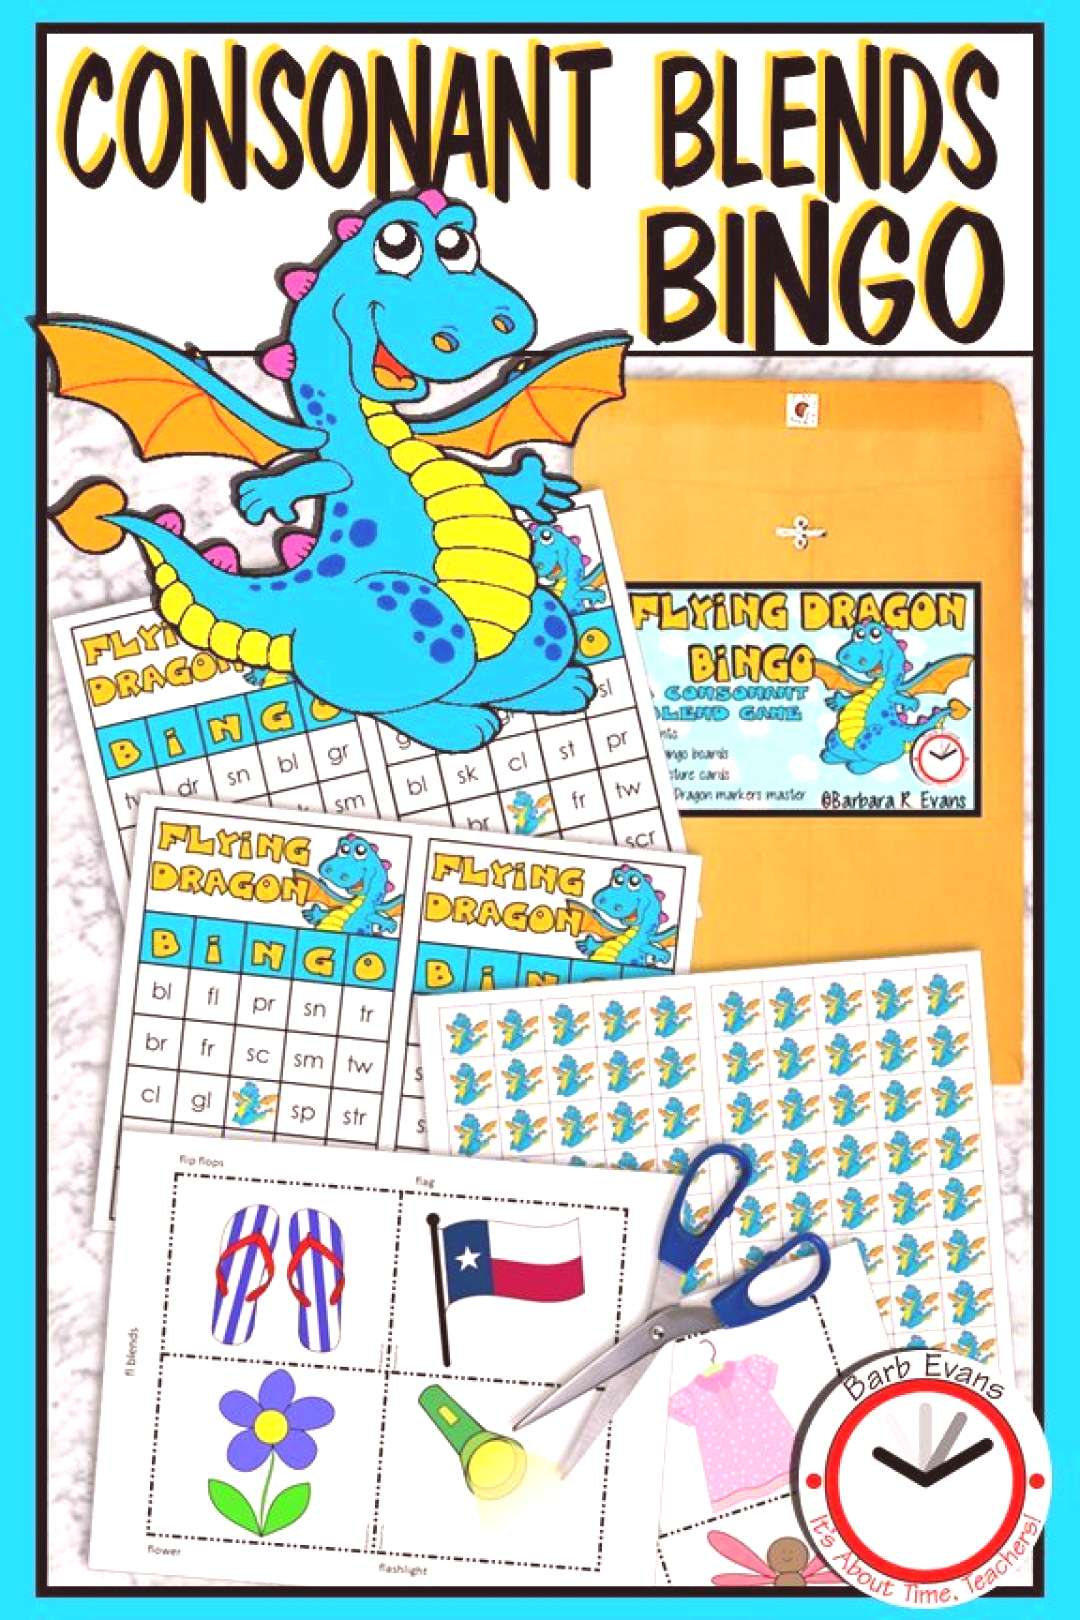 CONSONANT BLENDS and CLUSTERS Flying Dragon Bingo Phonics Letter Sounds Flying Dragon Bingo gives